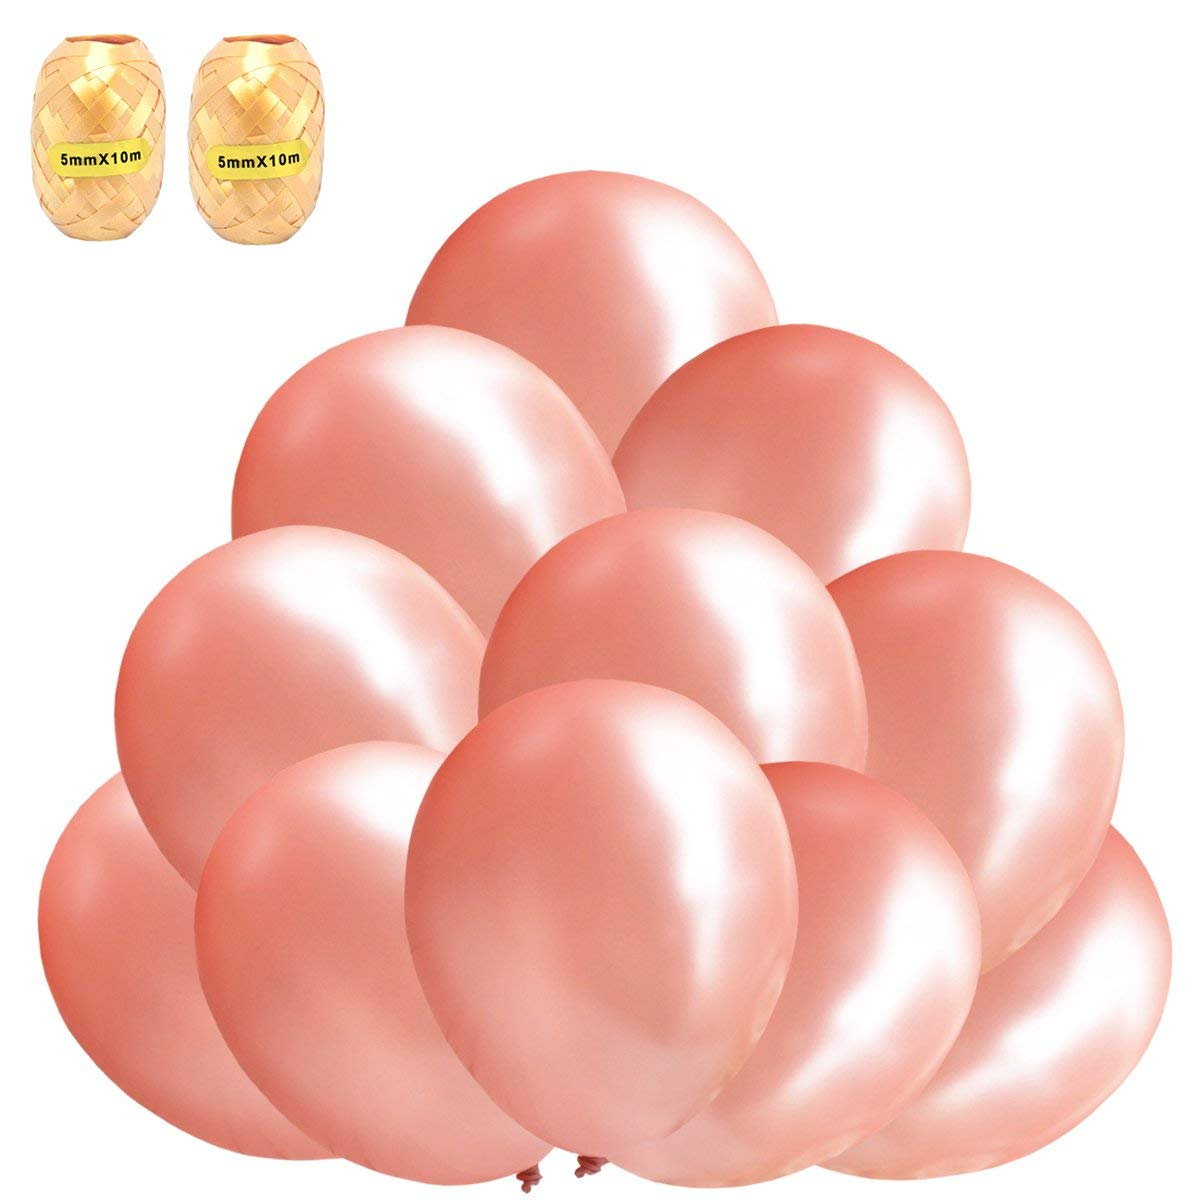 Fayoo Real Rose Gold Party Balloons 12 inch 40 Pcs Elegant Latex Party Balloons for Weddings, Party Decorations, Birthdays, Bridal Shower, Valentine's Day, Graduation (40pcs+2)